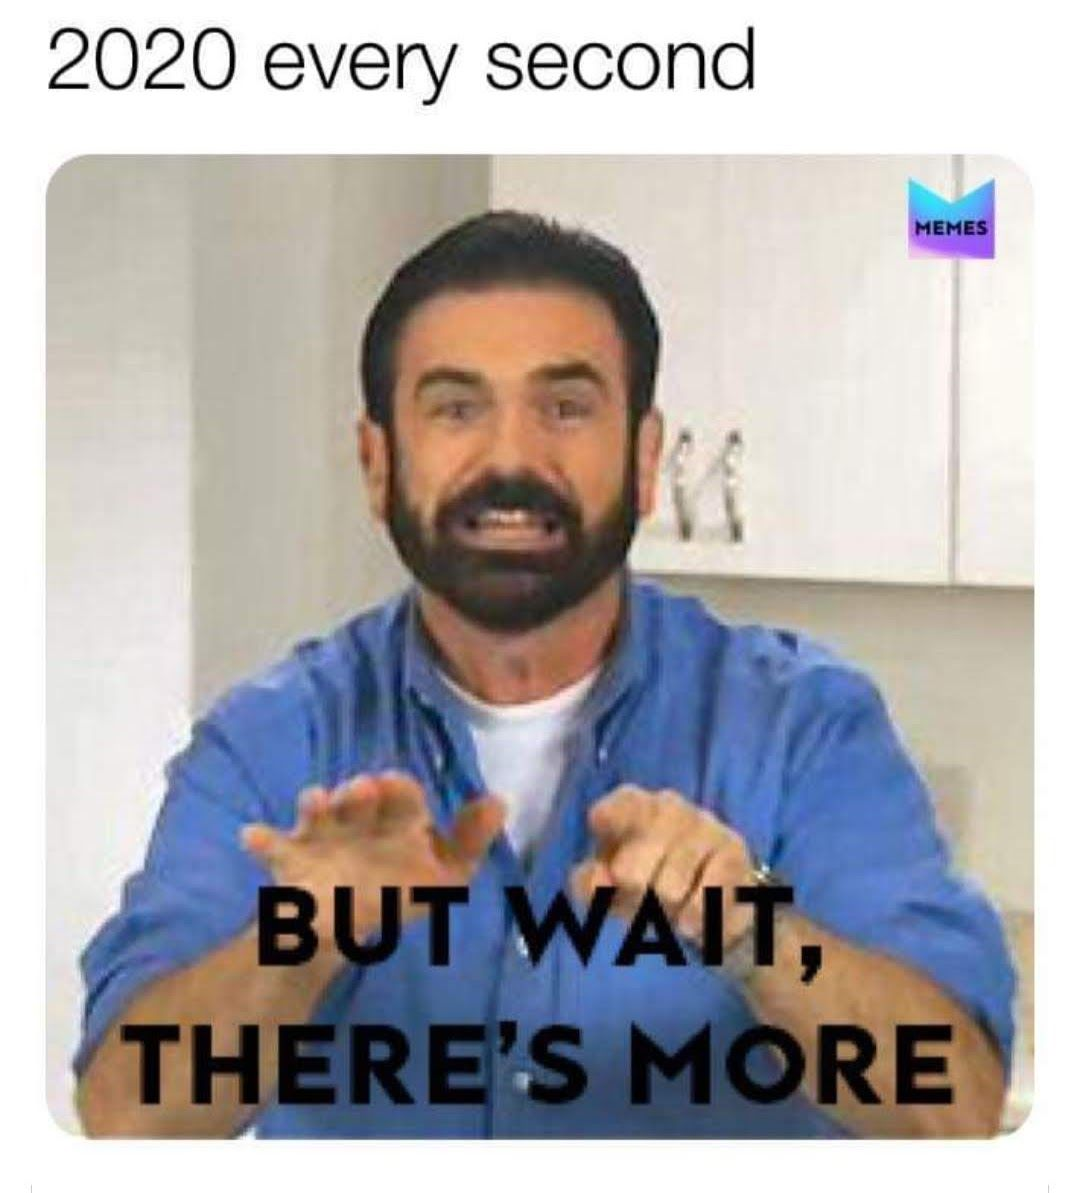 2020 Every Second Really Funny Memes Funny Relatable Memes Stupid Funny Memes